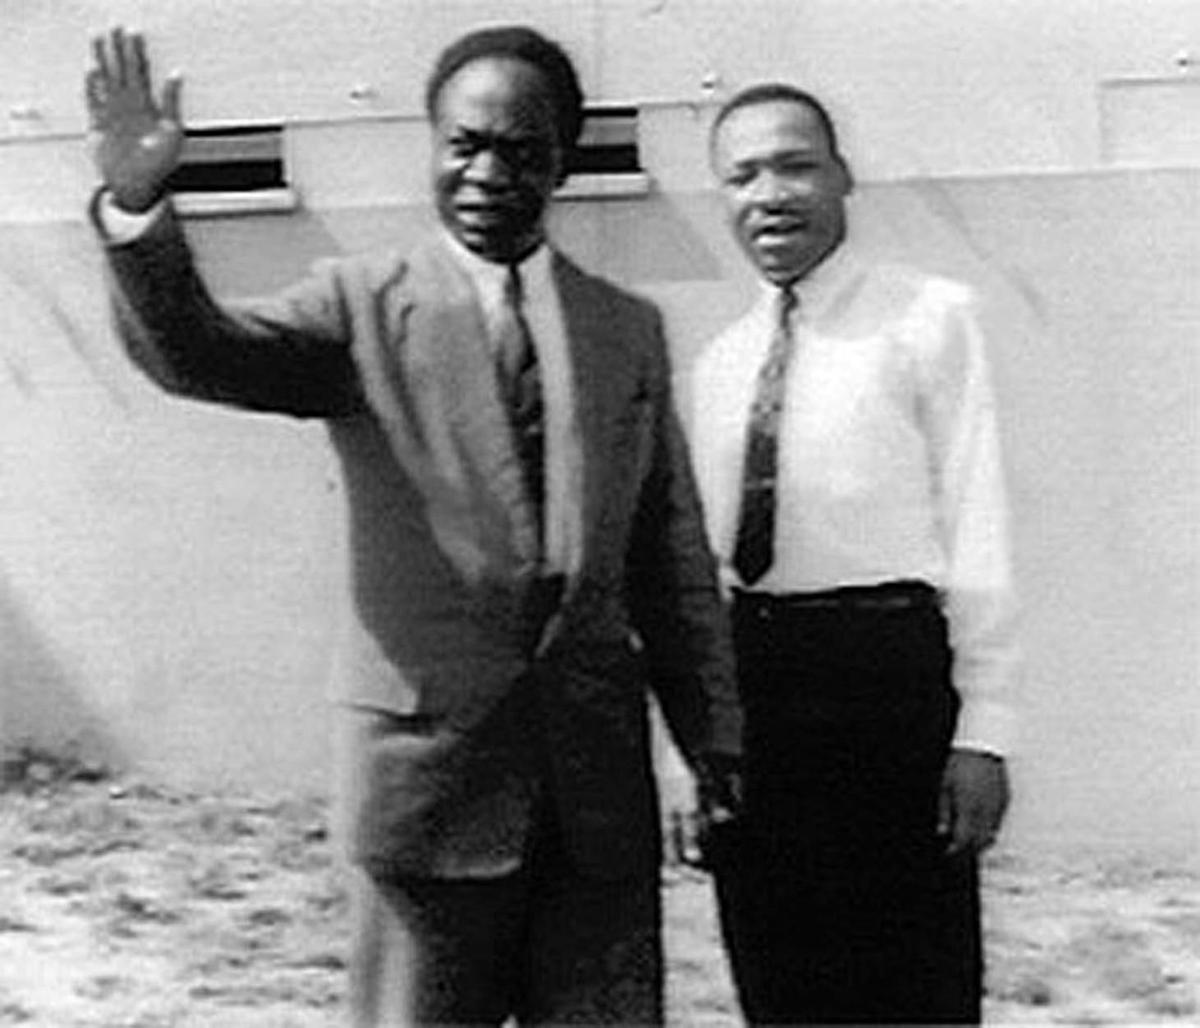 Kwame Nkrumah invited #MLKJr to Ghana's independence ceremony on 6 March 1957. The Black liberation struggle has always been a #PanAfrican project, either organized in direct ways or through ideological congruency. #PanAfricanismOrPerish